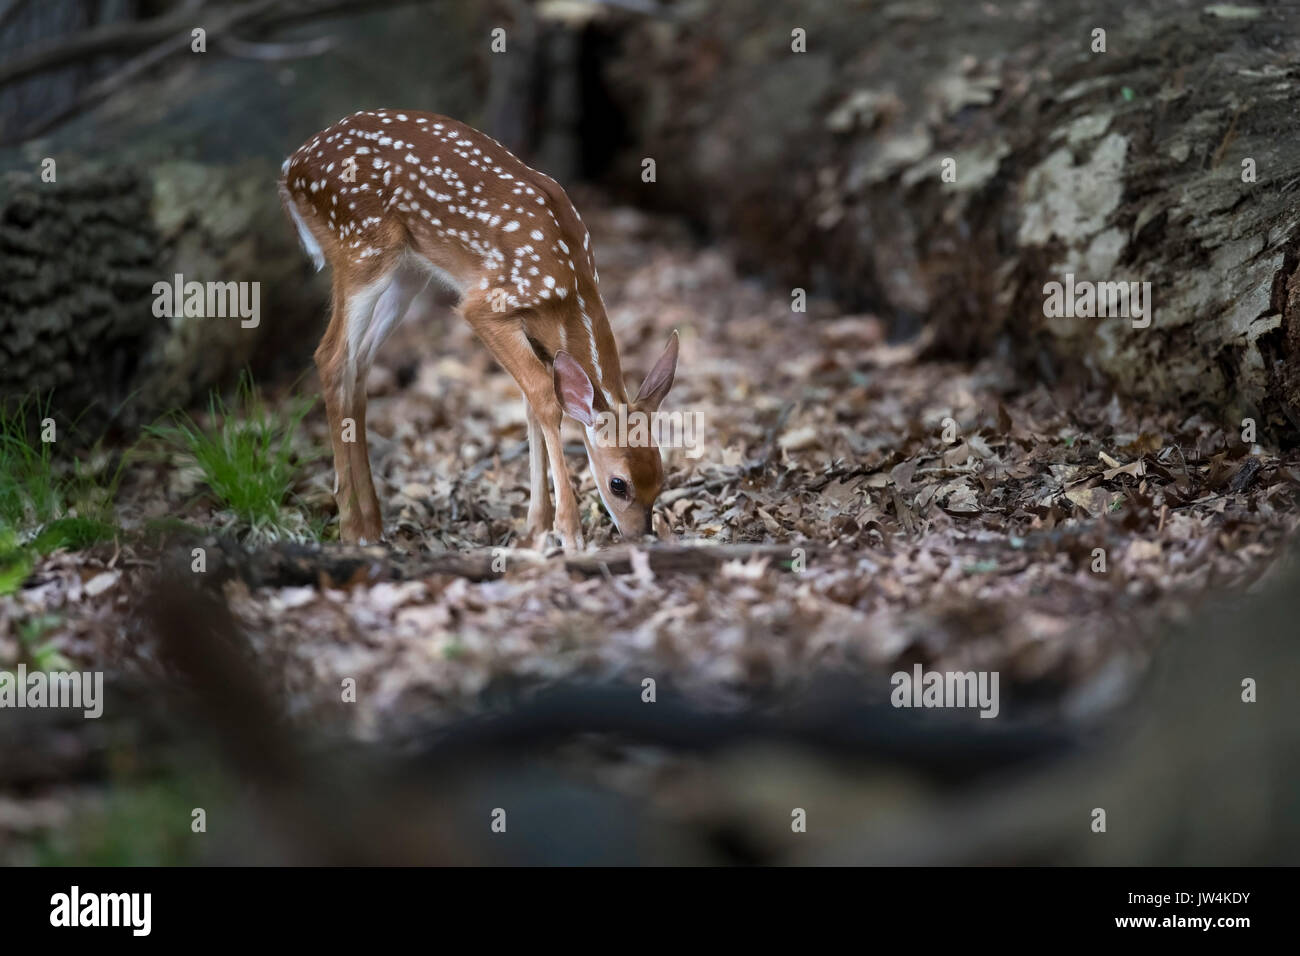 A fawn whitetail deer looking for food. - Stock Image